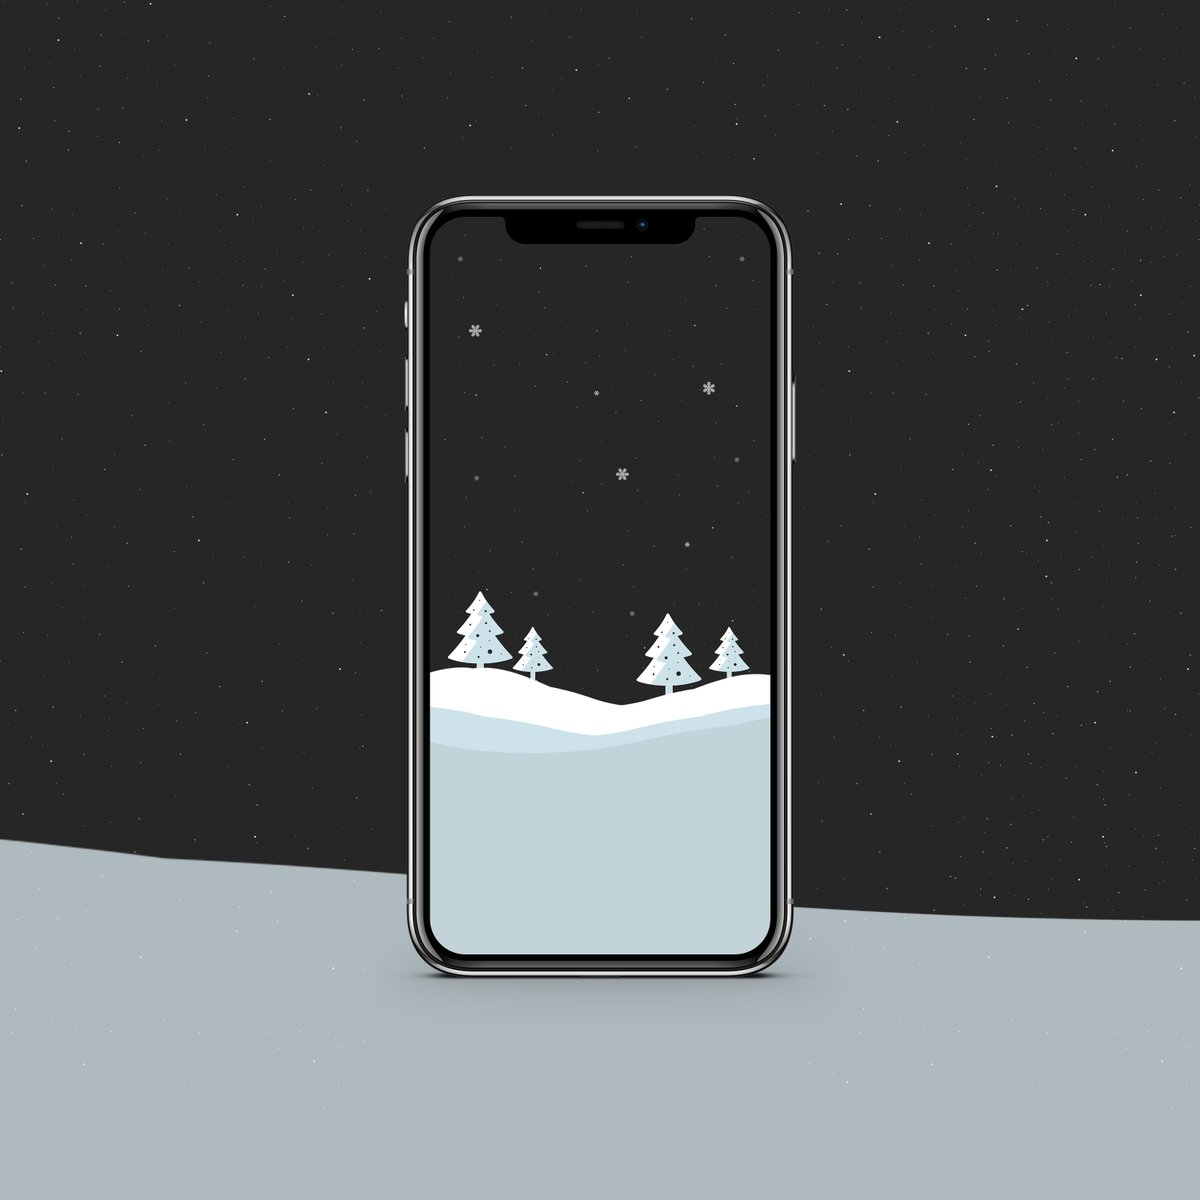 Ar7 On Twitter Ios Homescreen Wallpaper Christmas Tree And